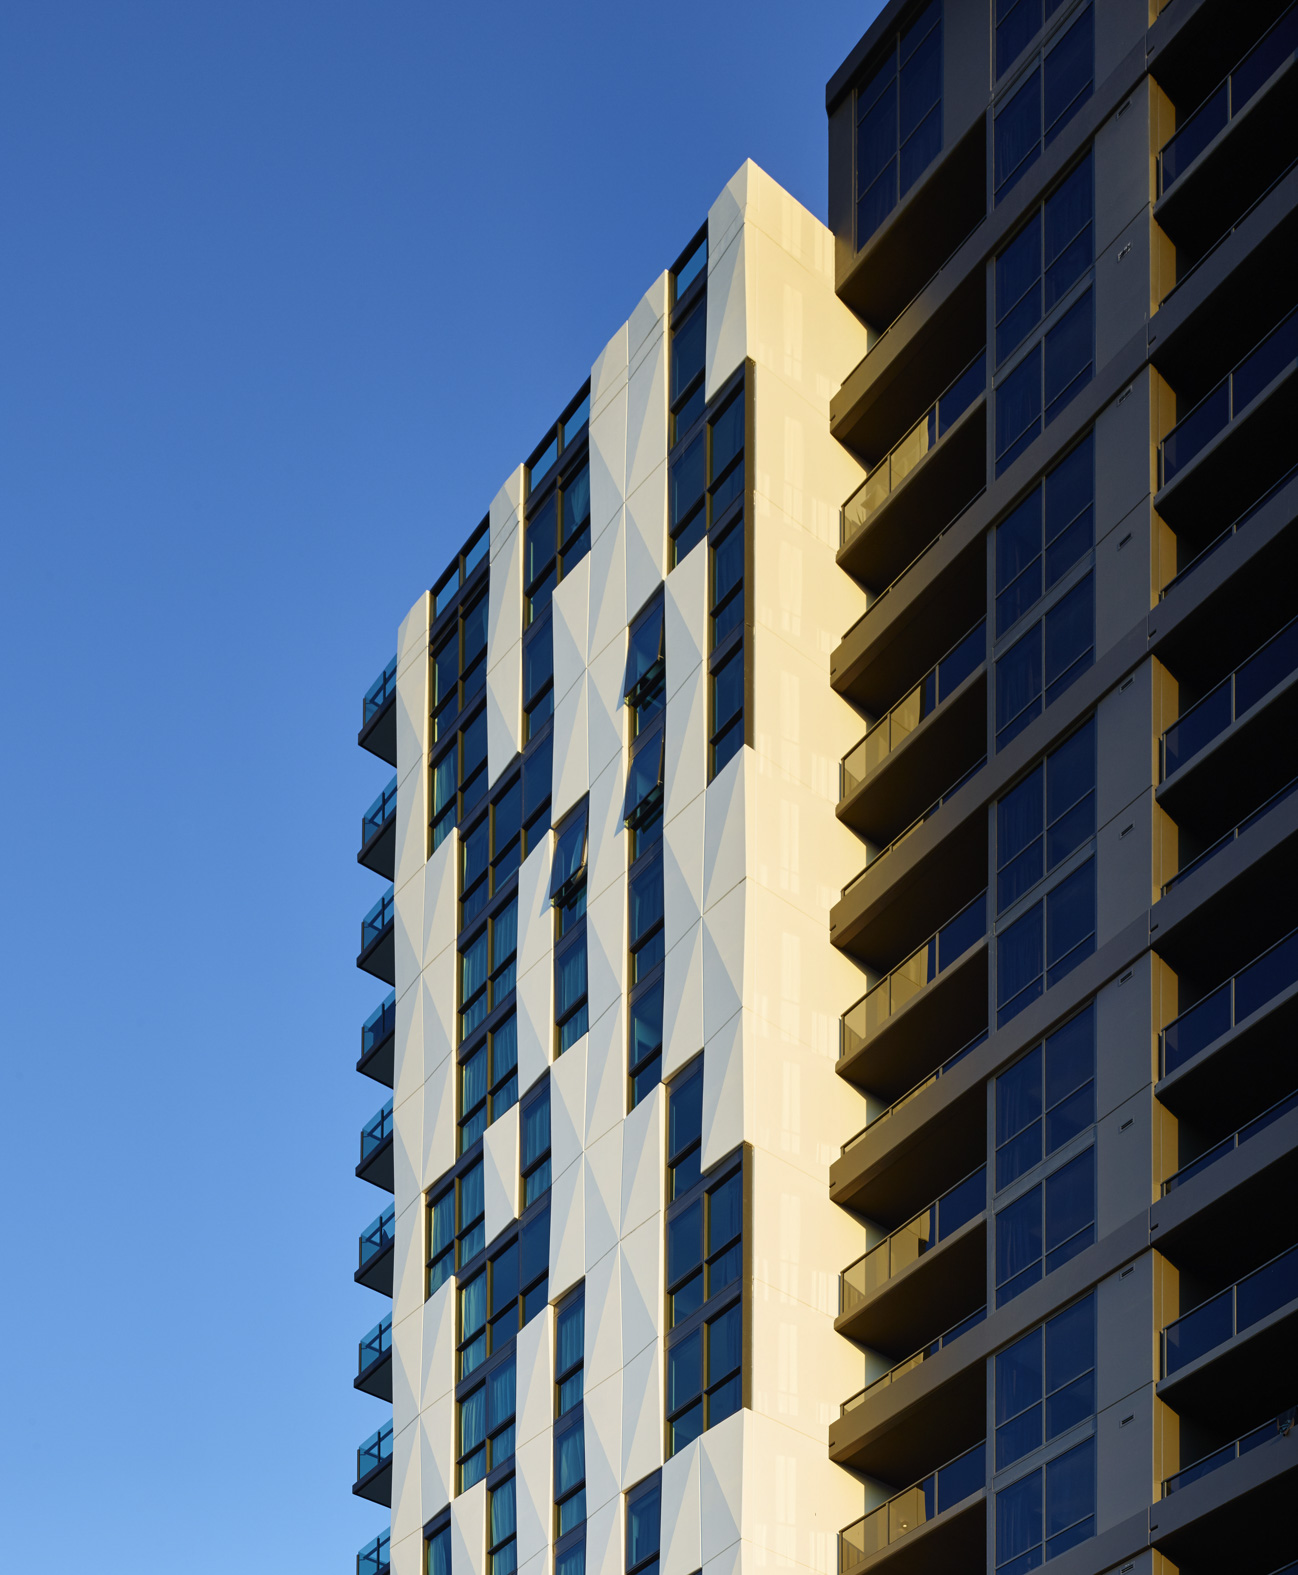 Mixed Use project in South Brisbane, QLD